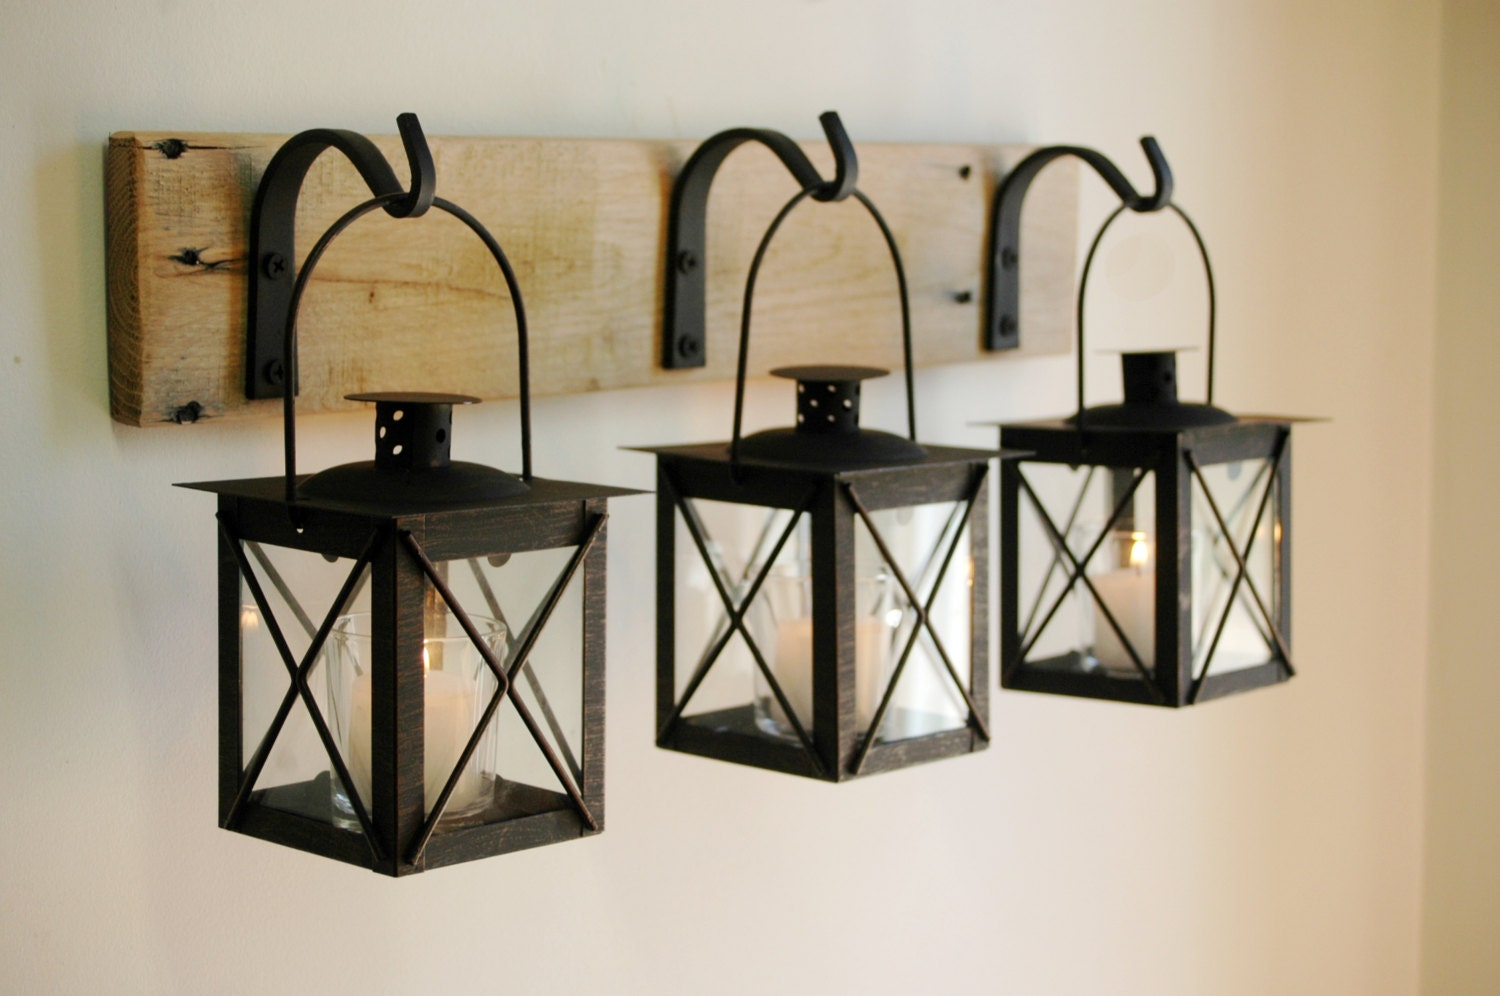 Rot Iron Wall Decor Black Lantern Trio Wall Decor Home Decor Rustic Decor